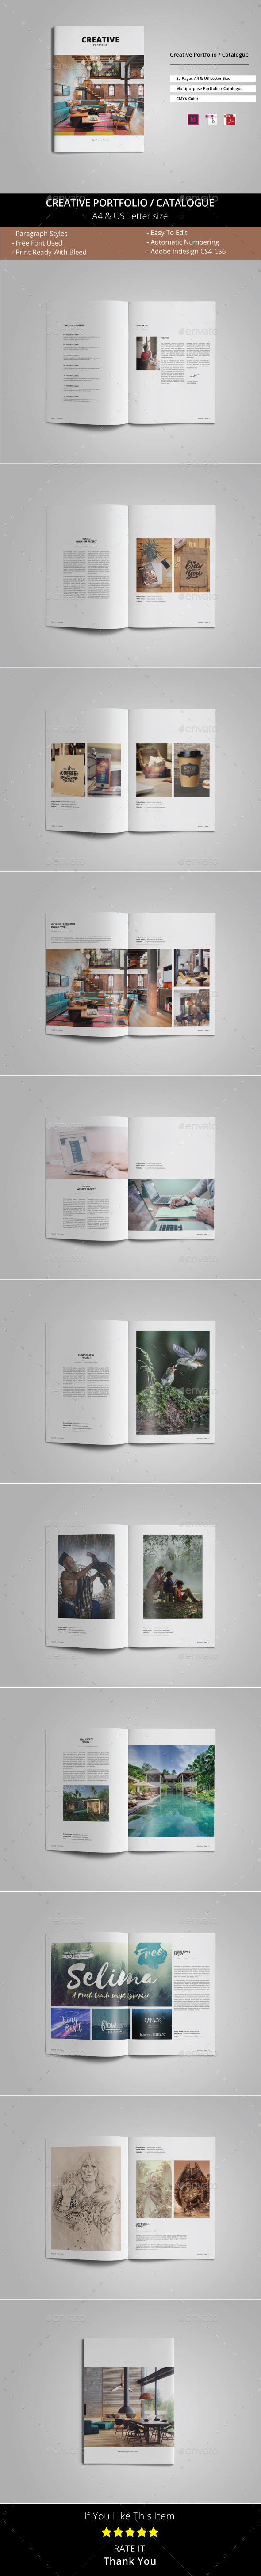 Multipurpose Portfolio / Catalogue - Portfolio Brochures